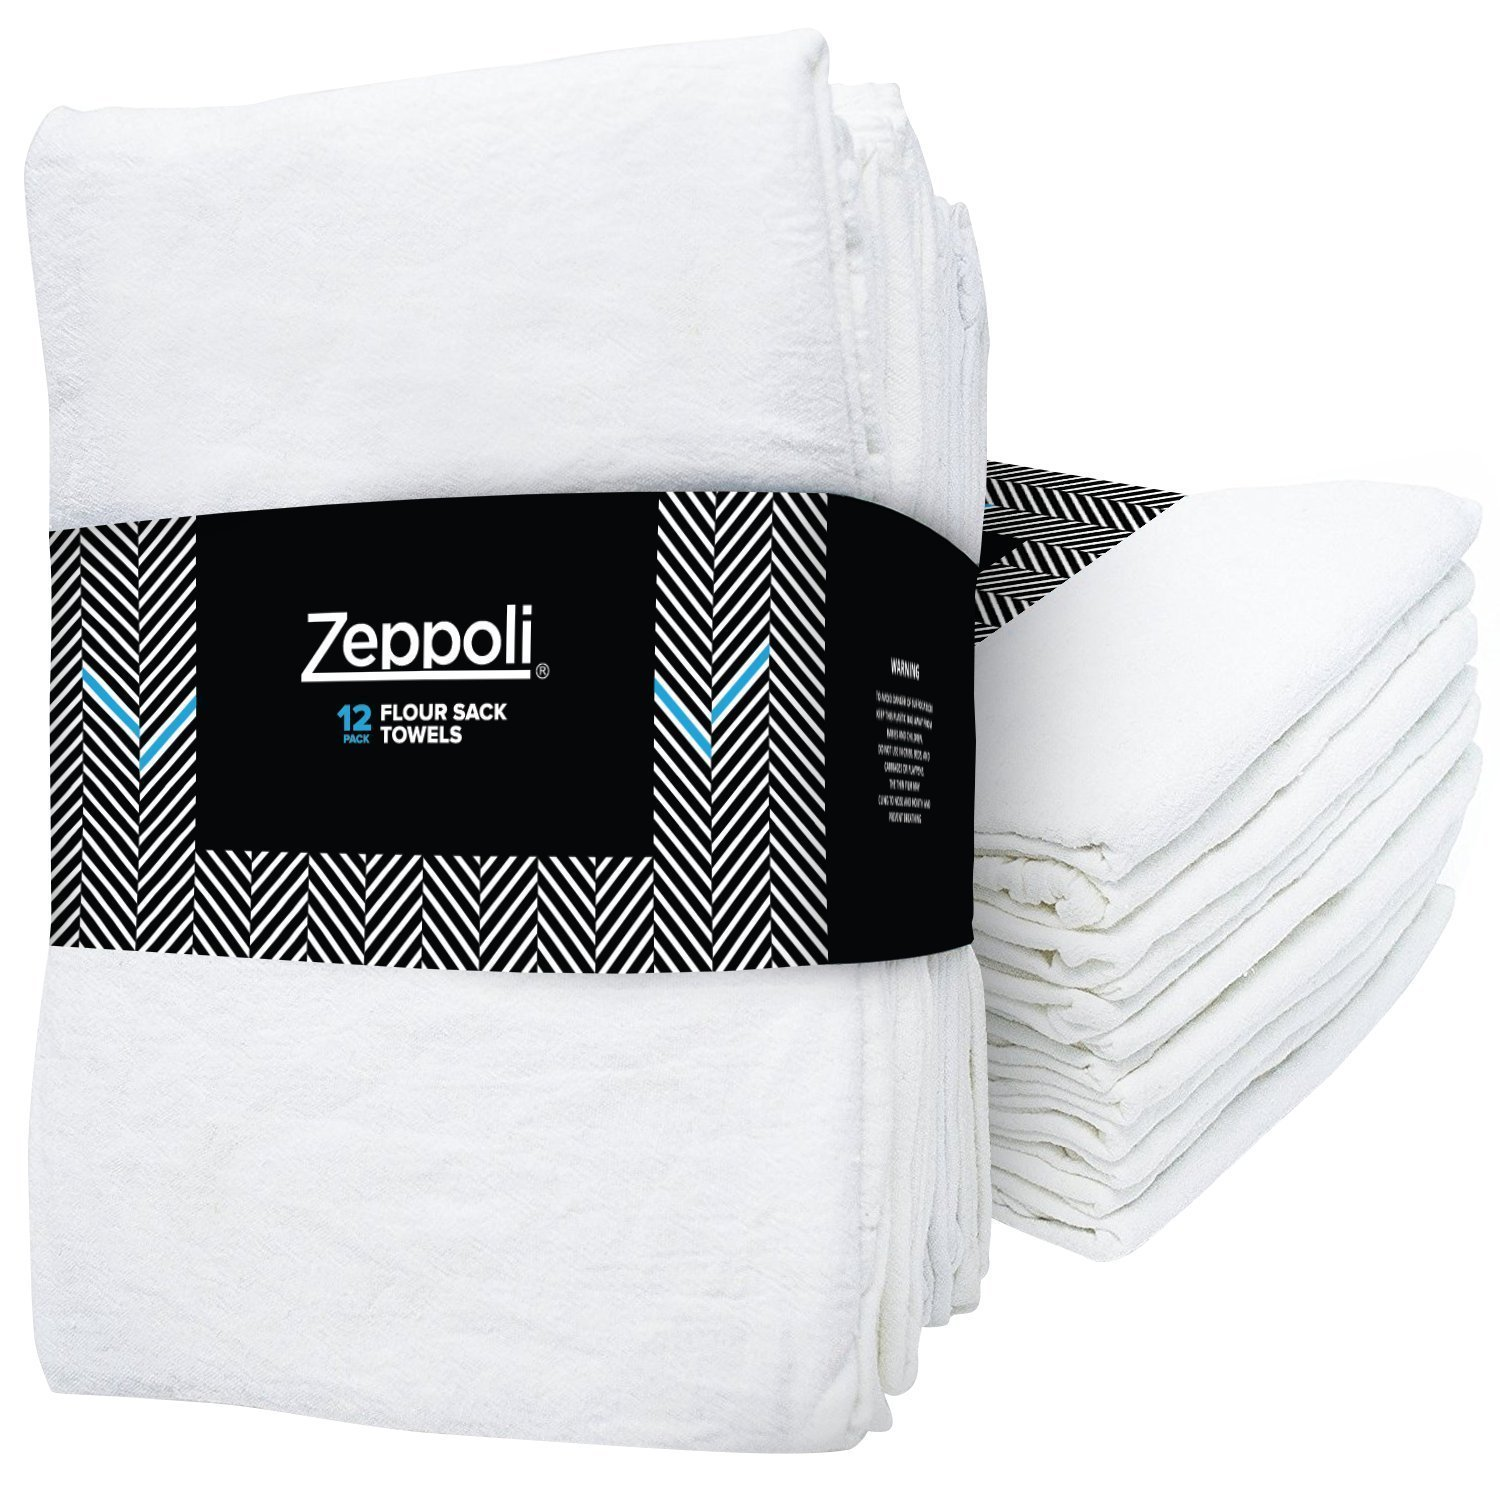 Zeppoli 24-Pack Flour Sack Towels - 31 x 31 Inches Kitchen Towels - Absorbent White Dish Towels - 100% Ring Spun Cotton Bar Towels by Zeppoli